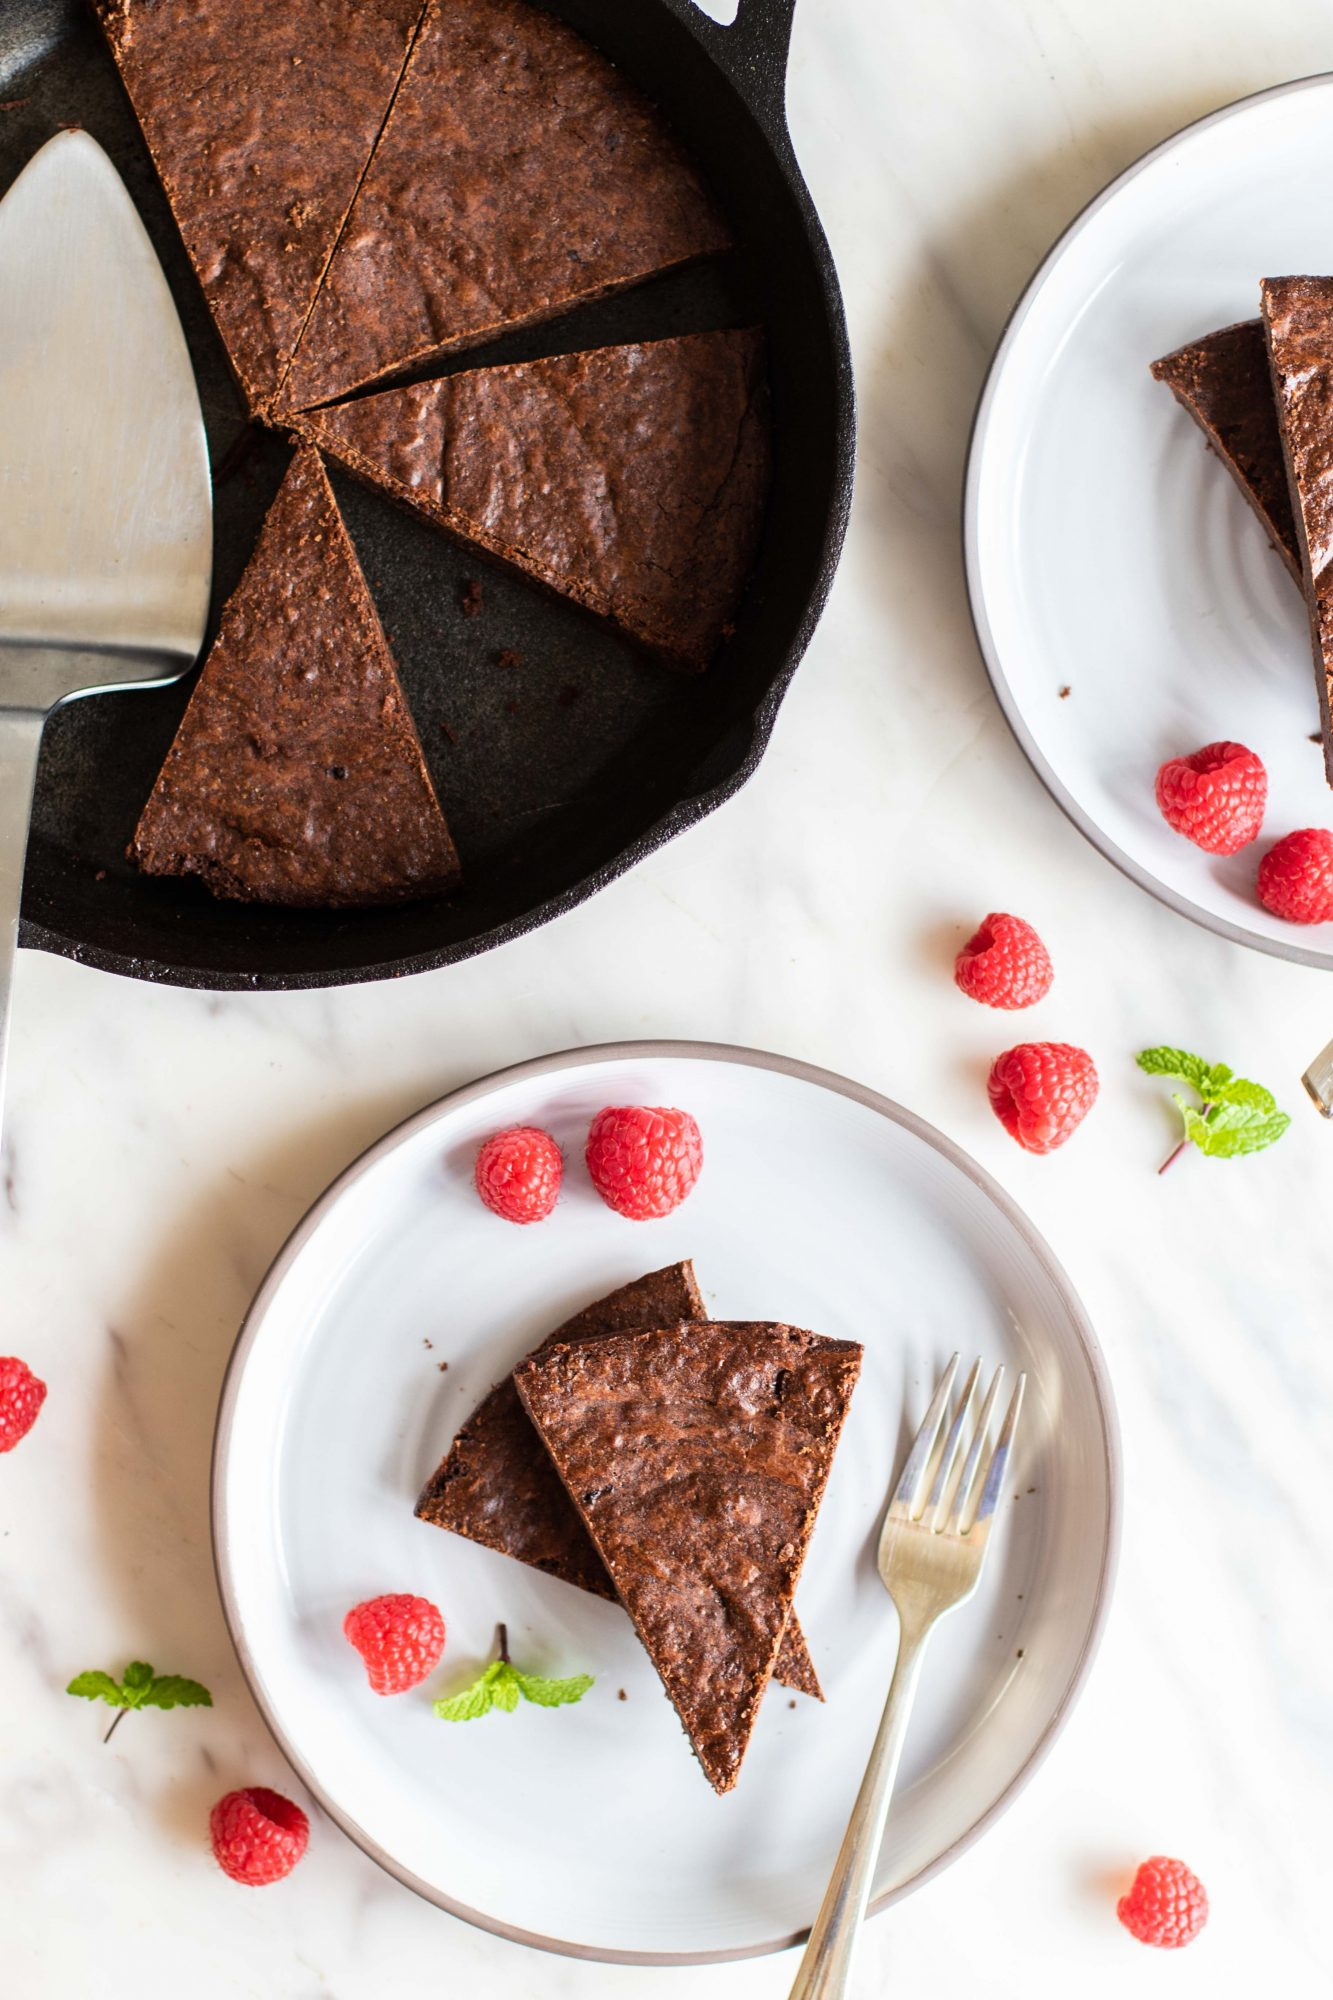 Skillet brownies are a delicious cast iron dessert